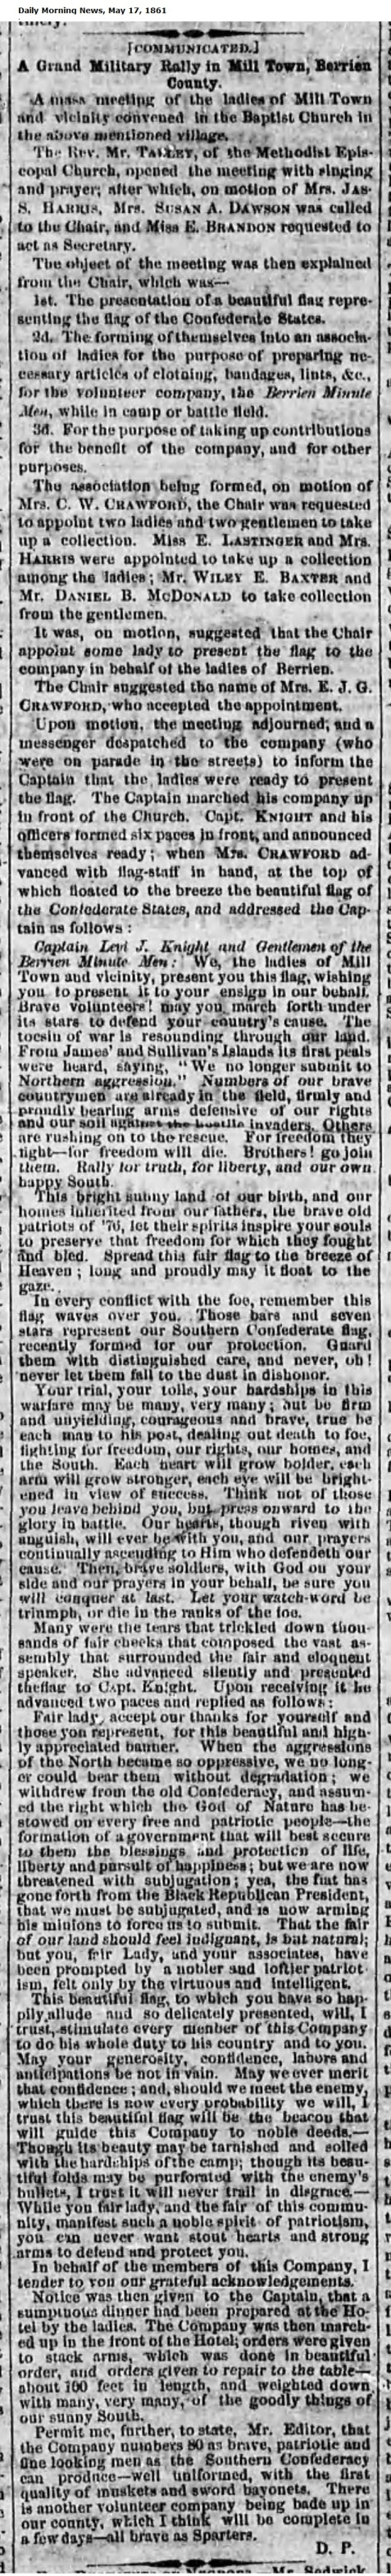 Military Rally at Milltown, GA. May 17, 1861 Savannah Daily Morning News